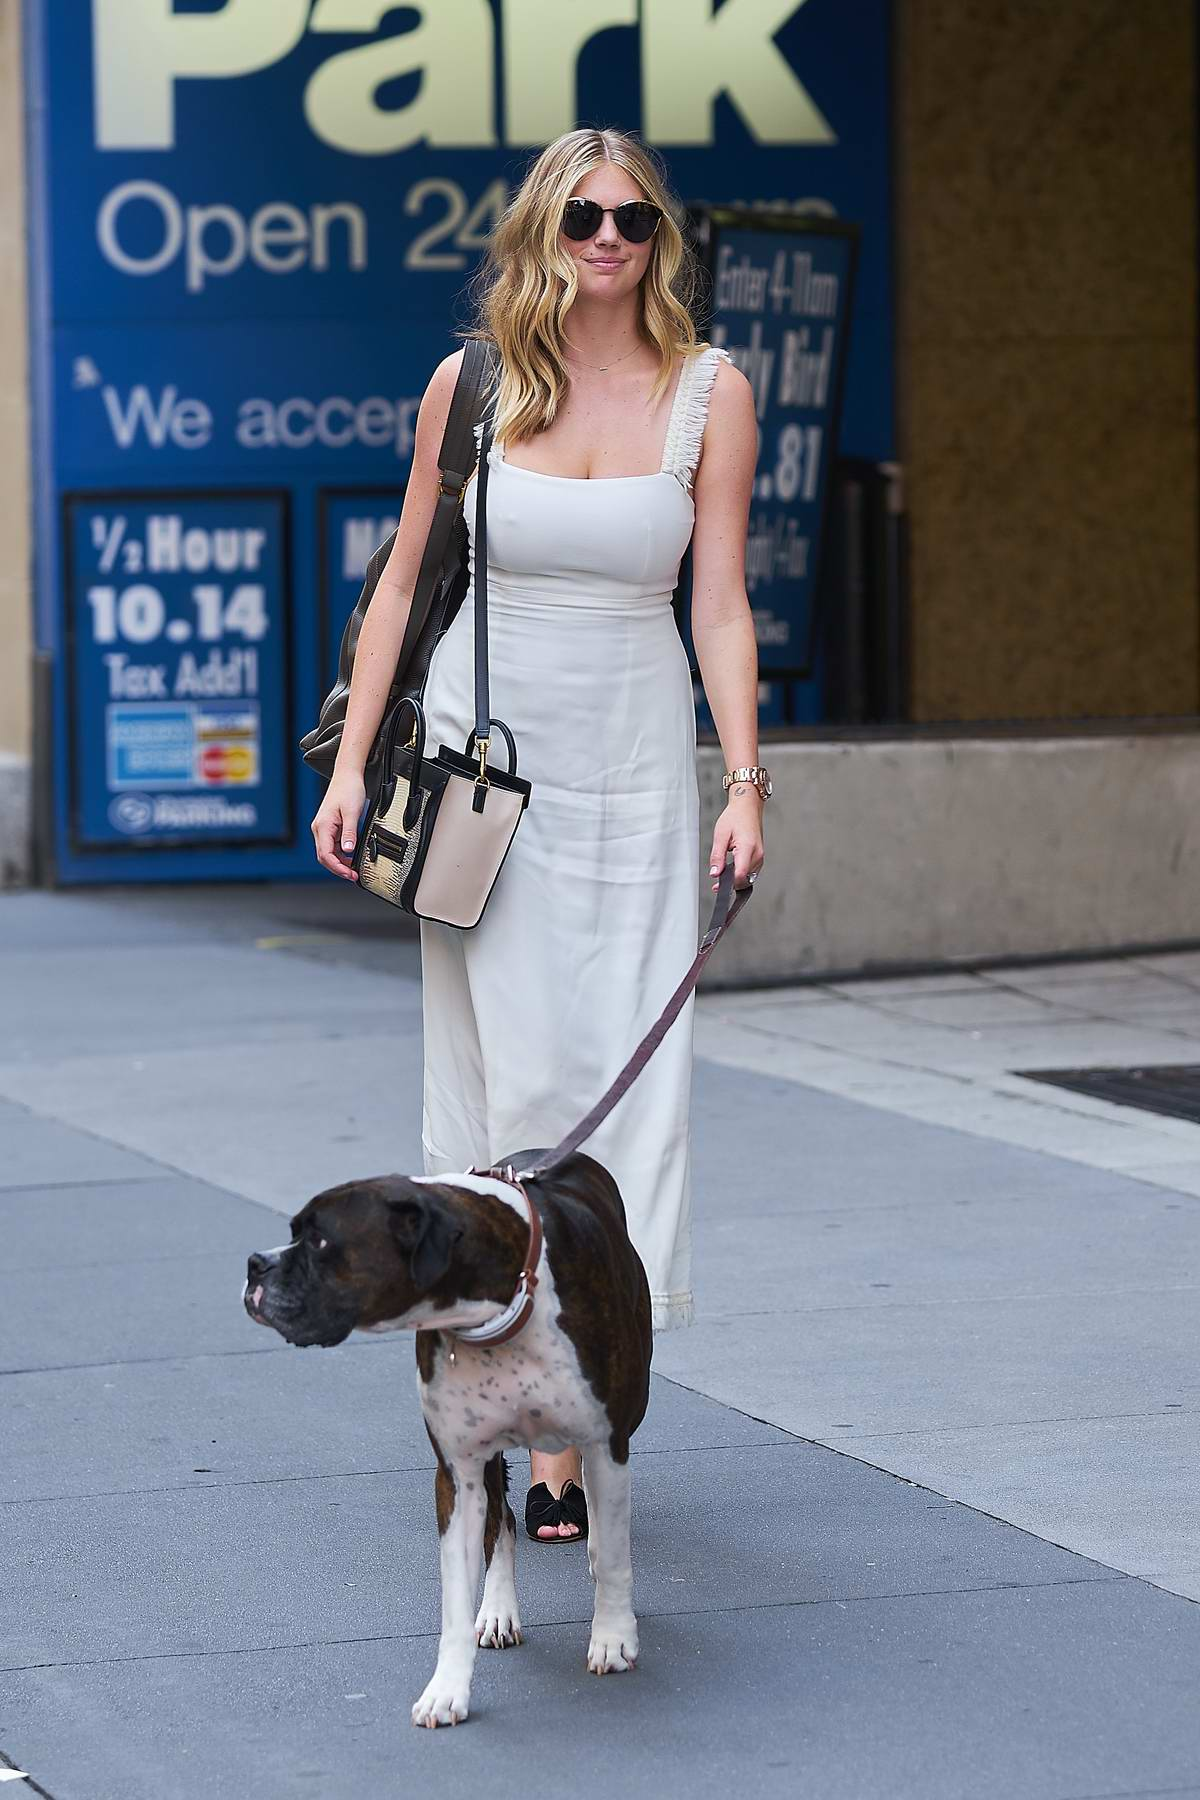 Kate Upton steps out with her dog Harley while wearing a White Dress in New York